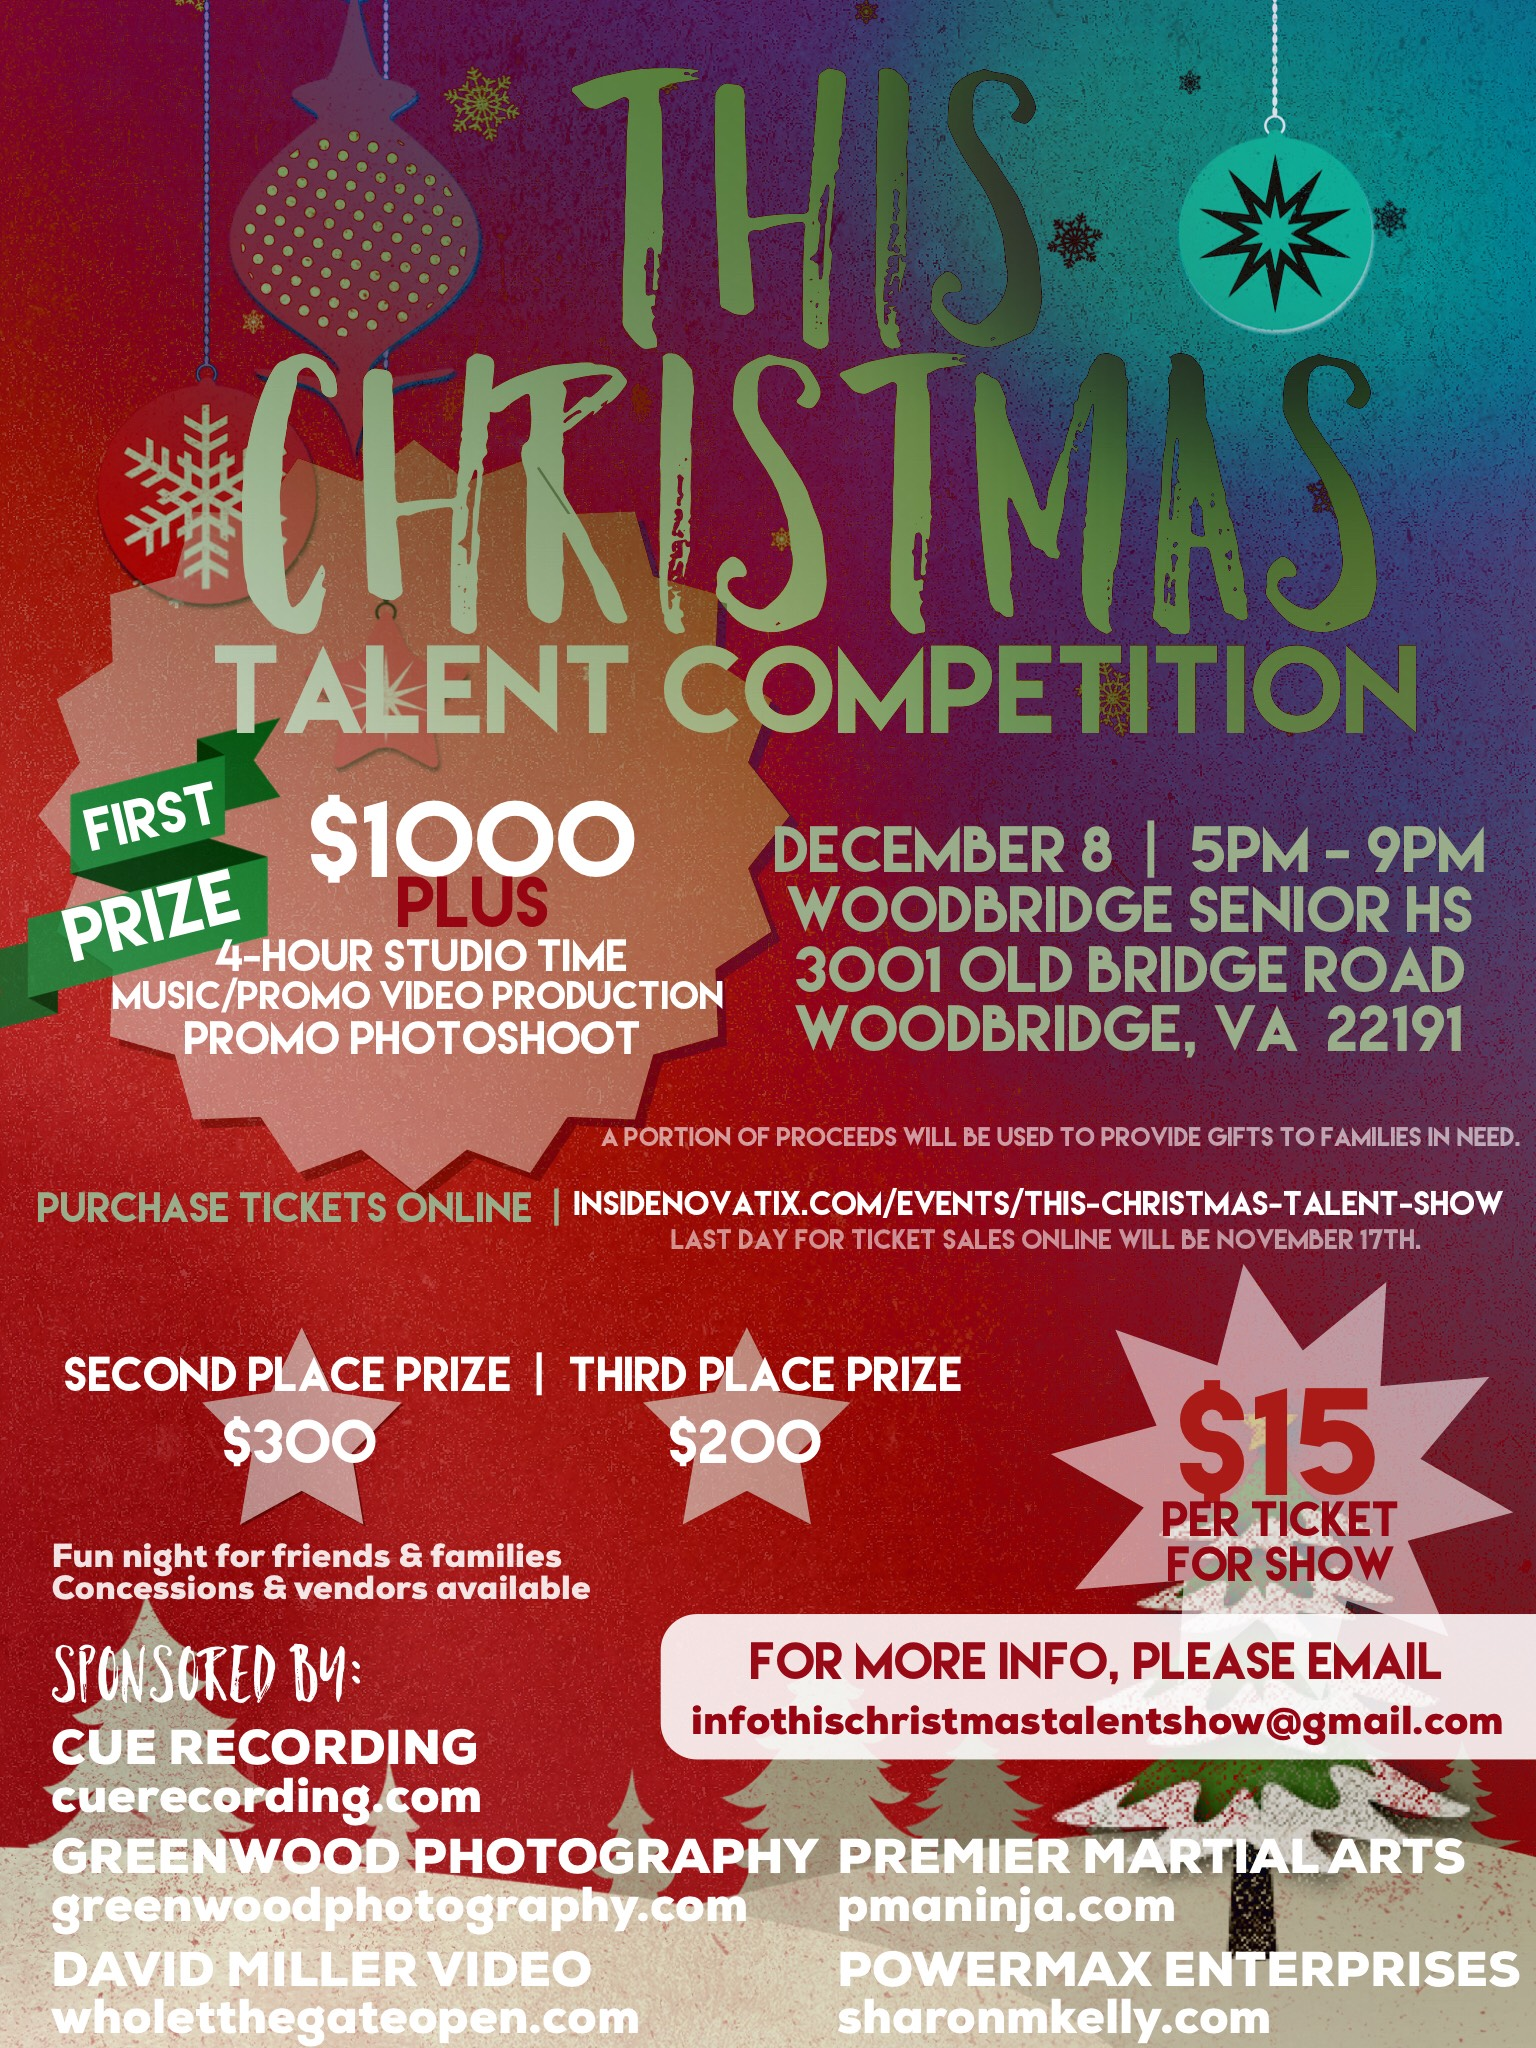 this christmas talent competition will be held on dec 8 at woodbridge senior high school